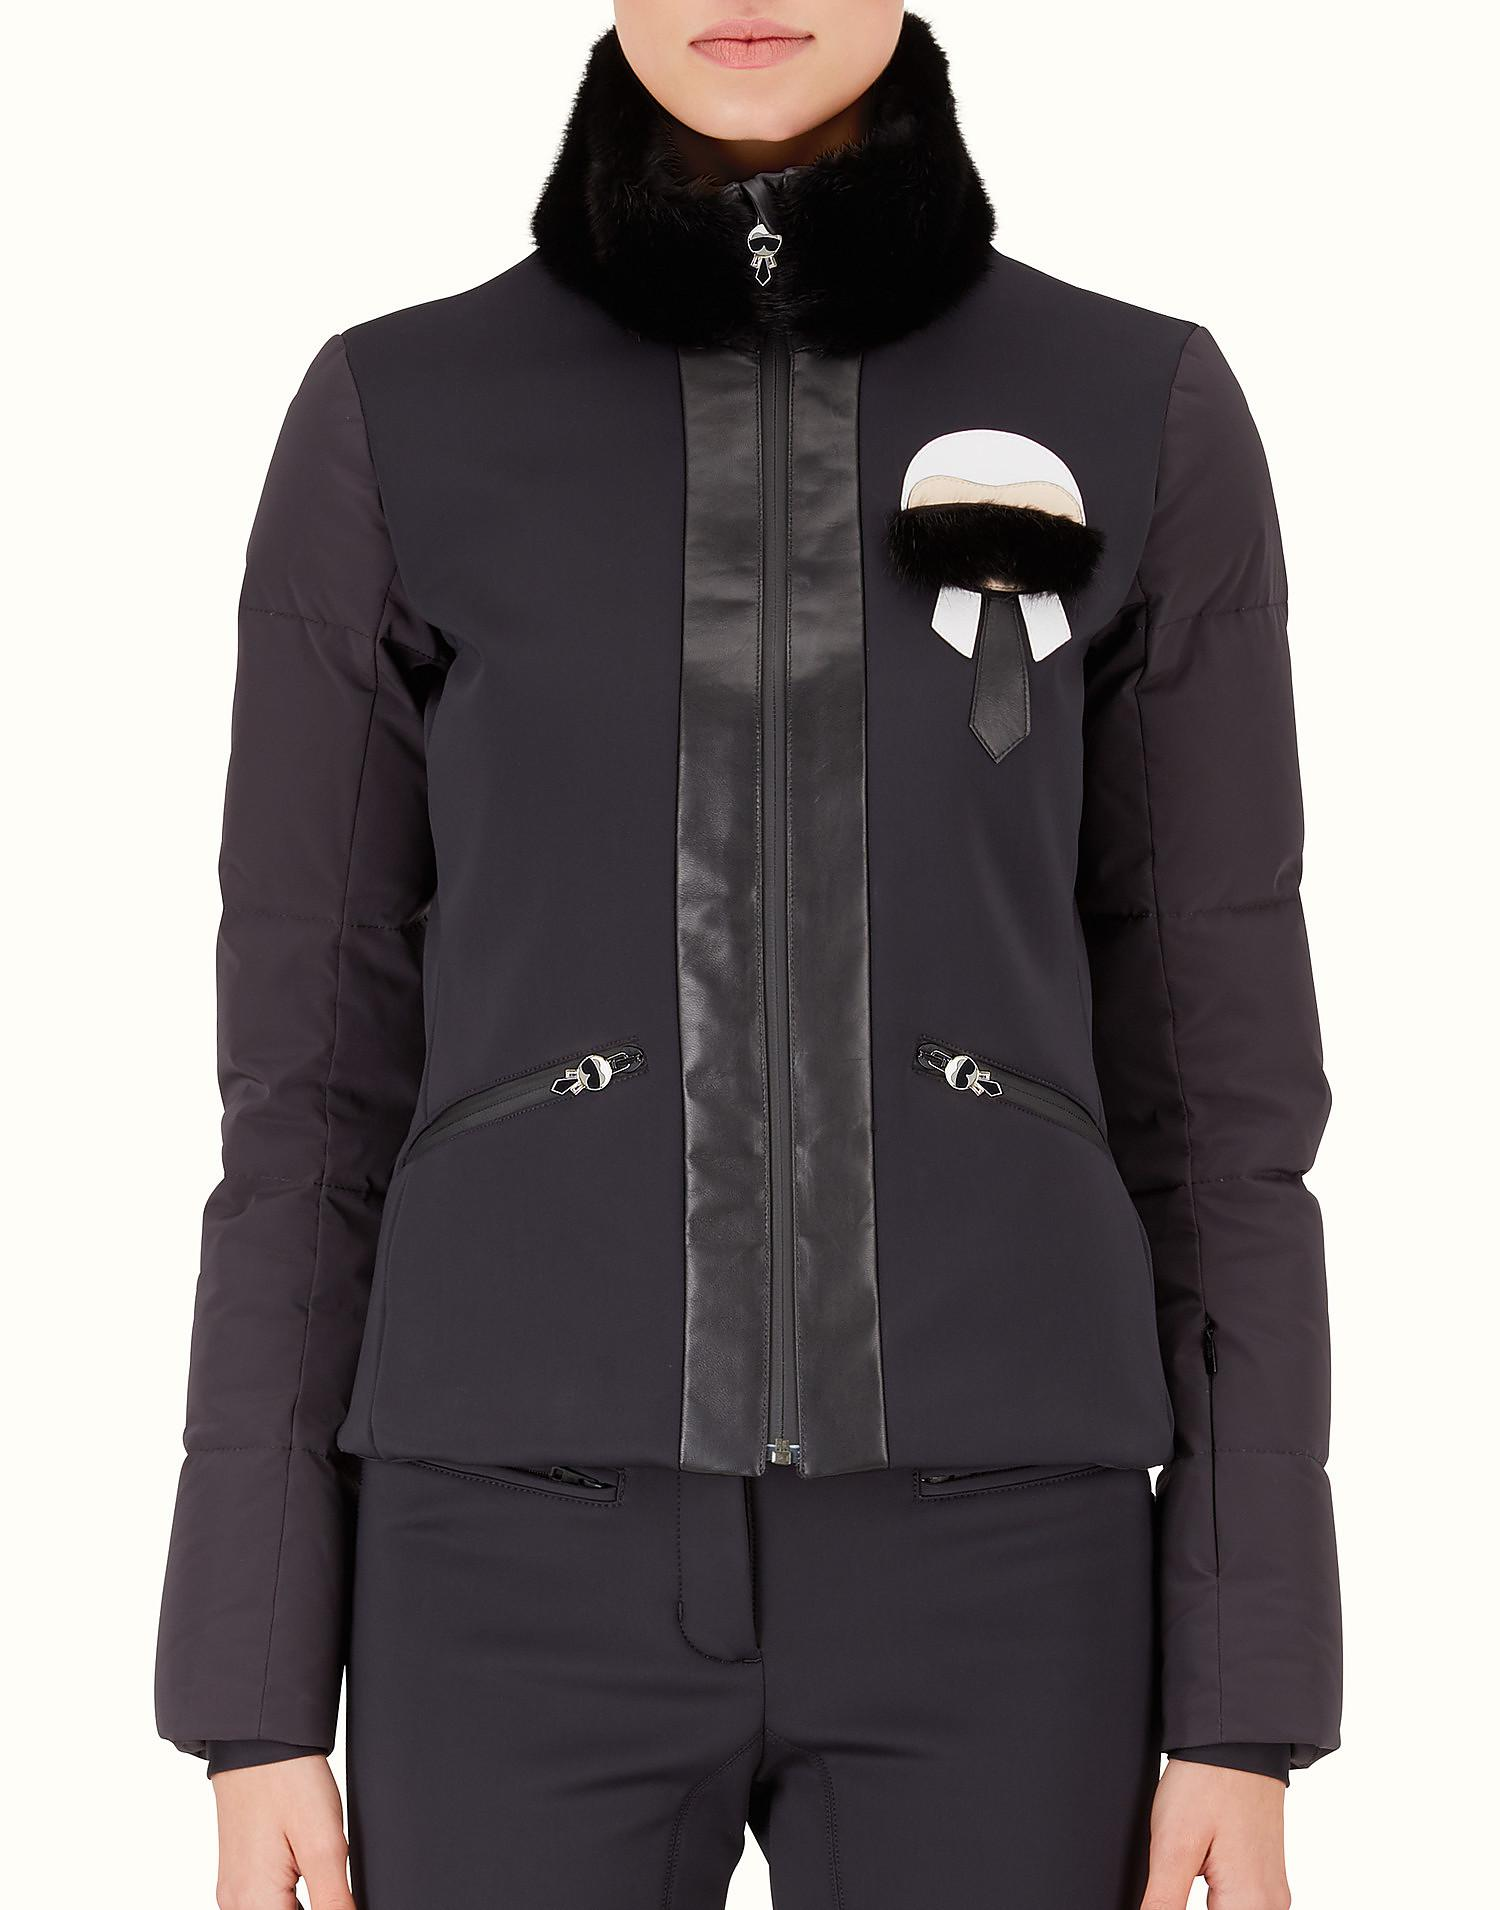 Karlito padded jacket - Red Fendi